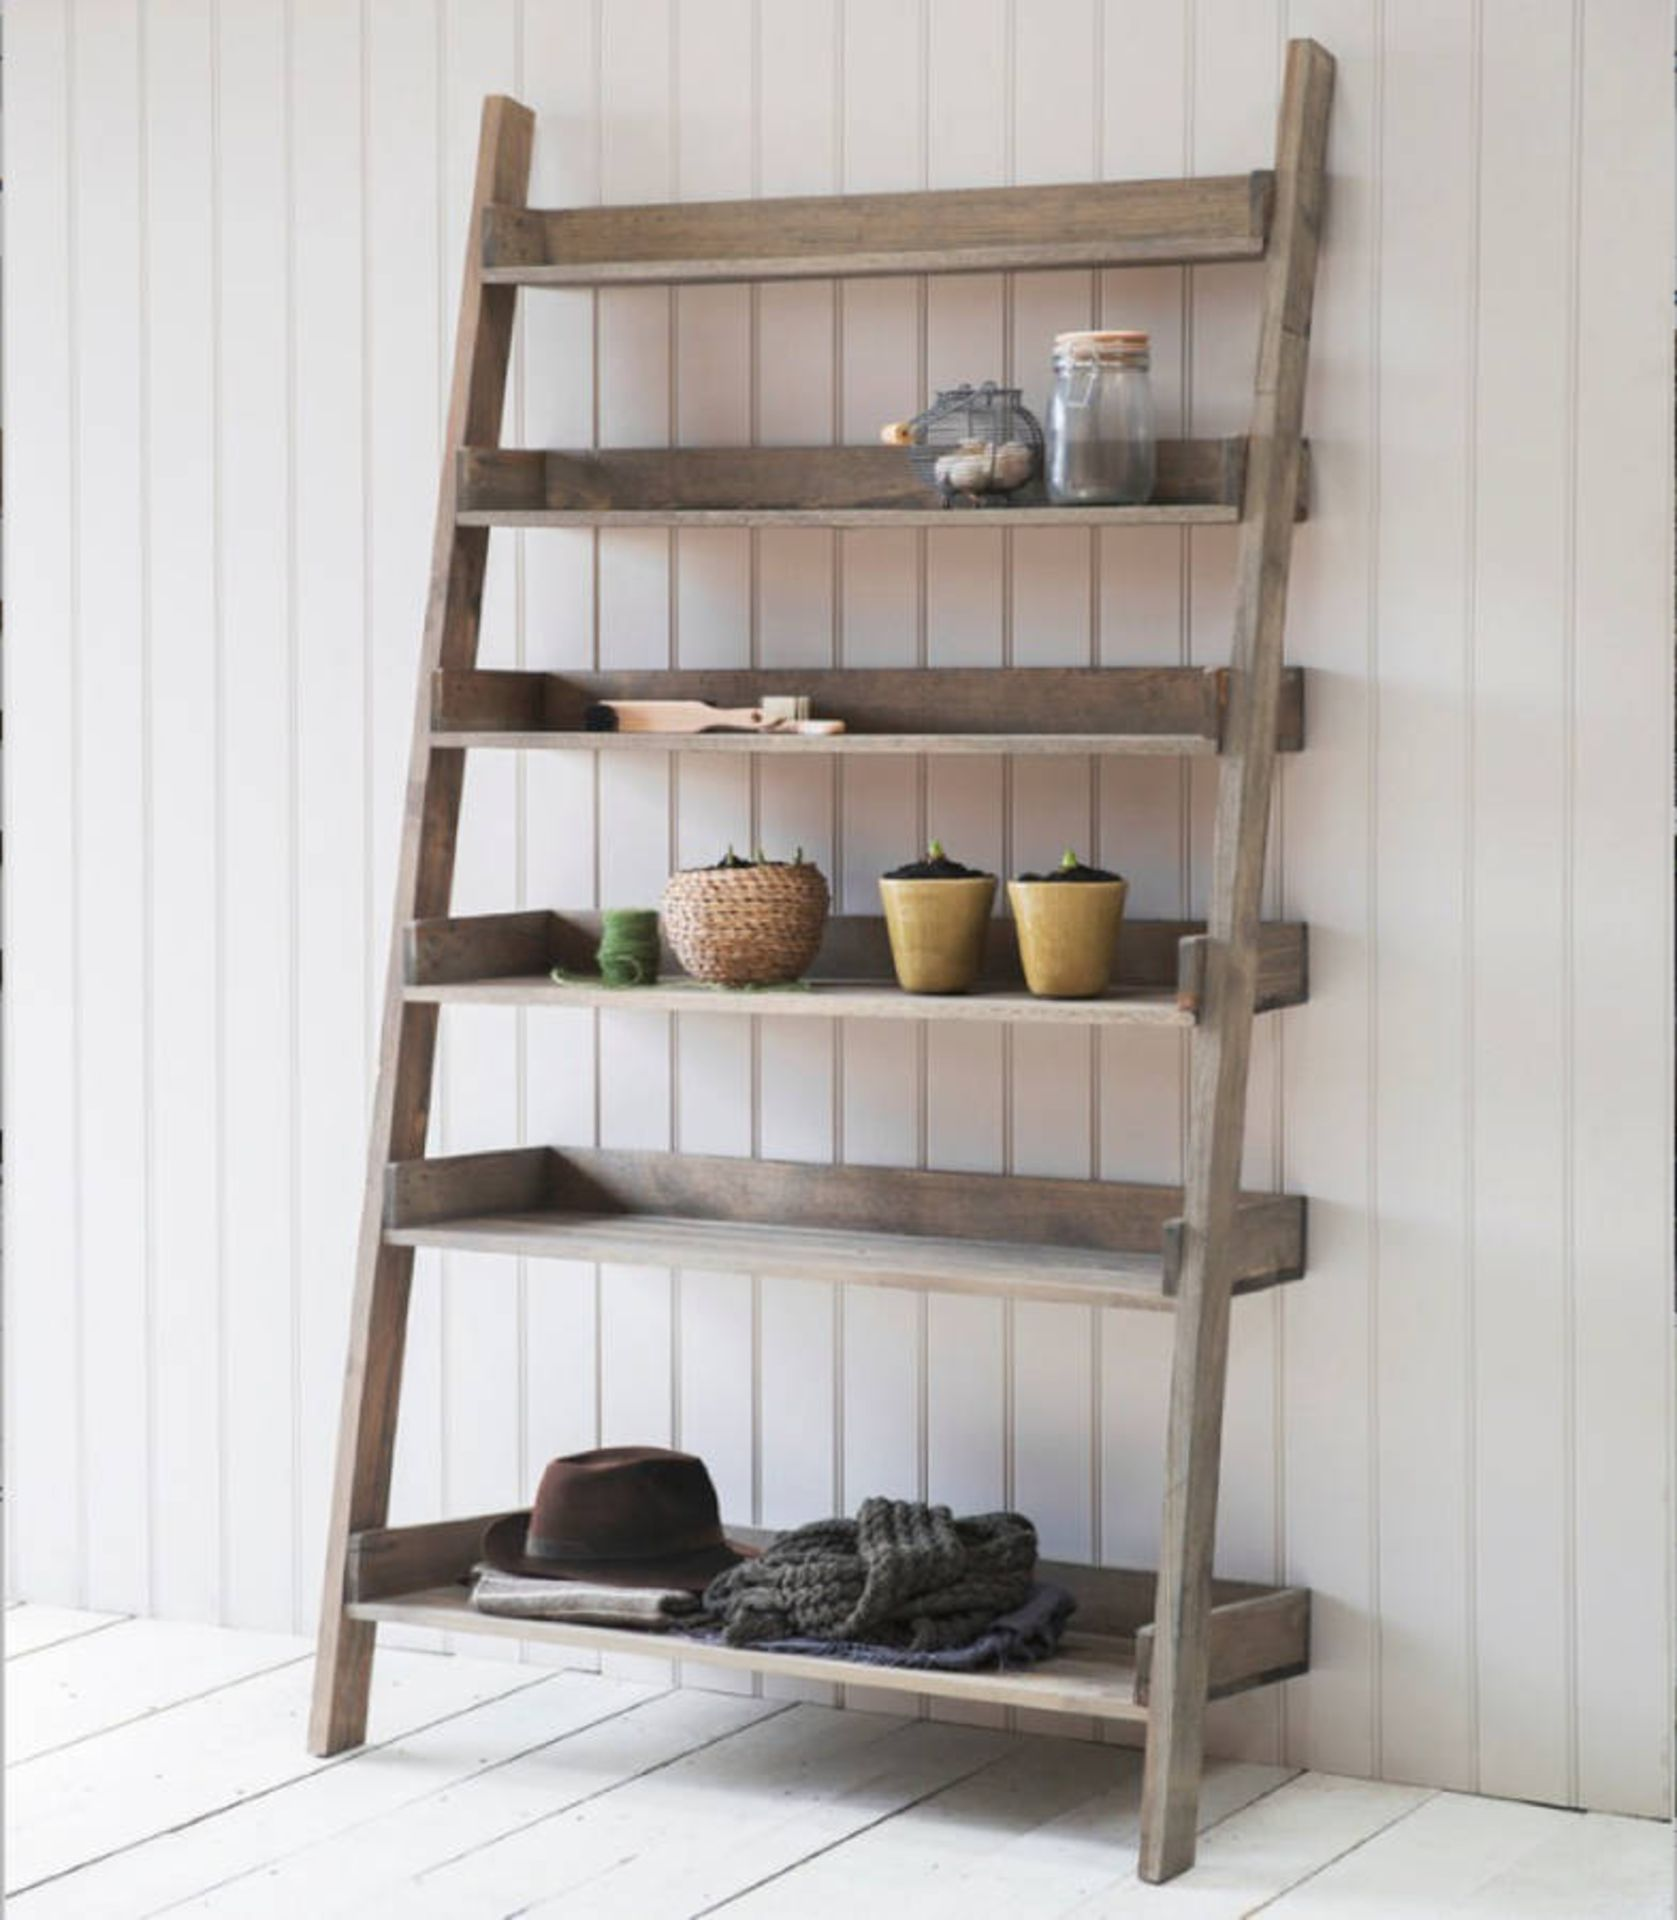 Lot 620 - Five Shelf Ladder Display Black Create an inspired space As an alternative to a traditional bookcase